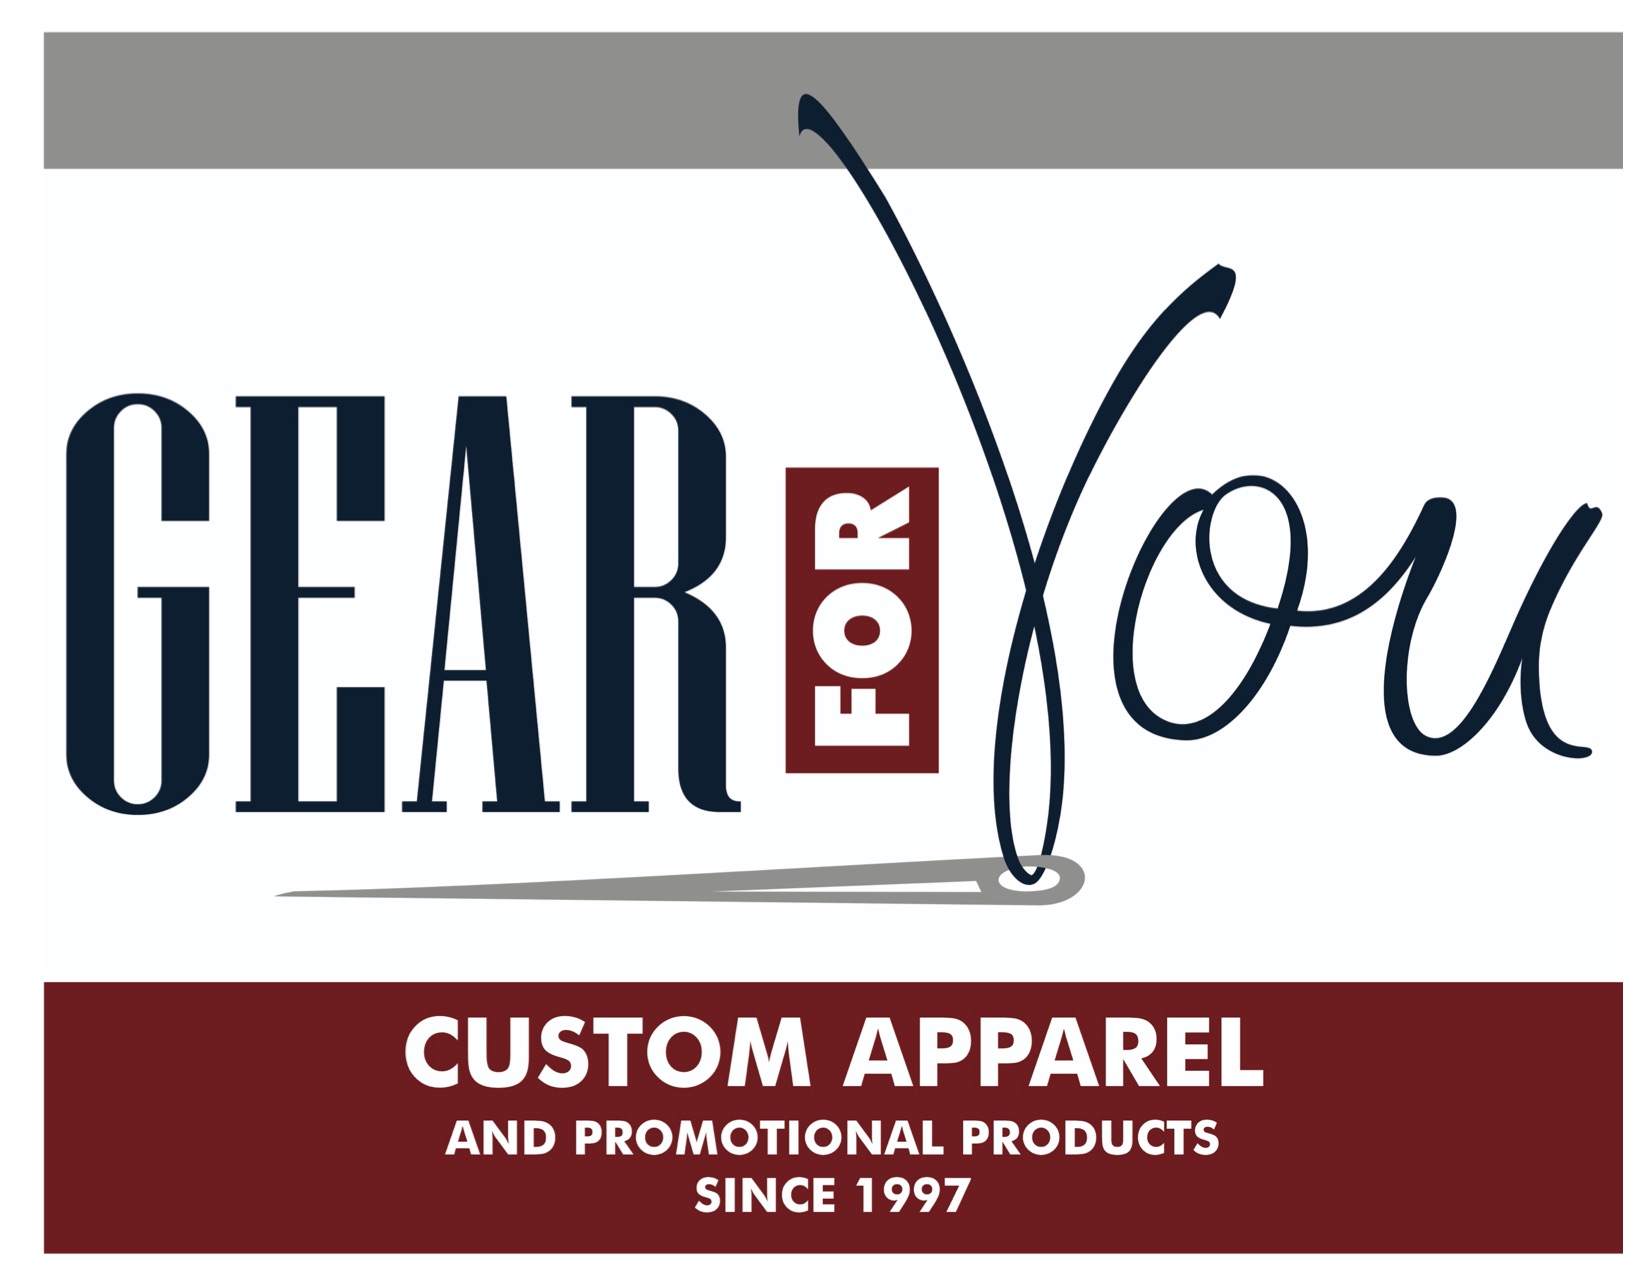 Player Gift Bags Sponsor - Gear for You - Logo